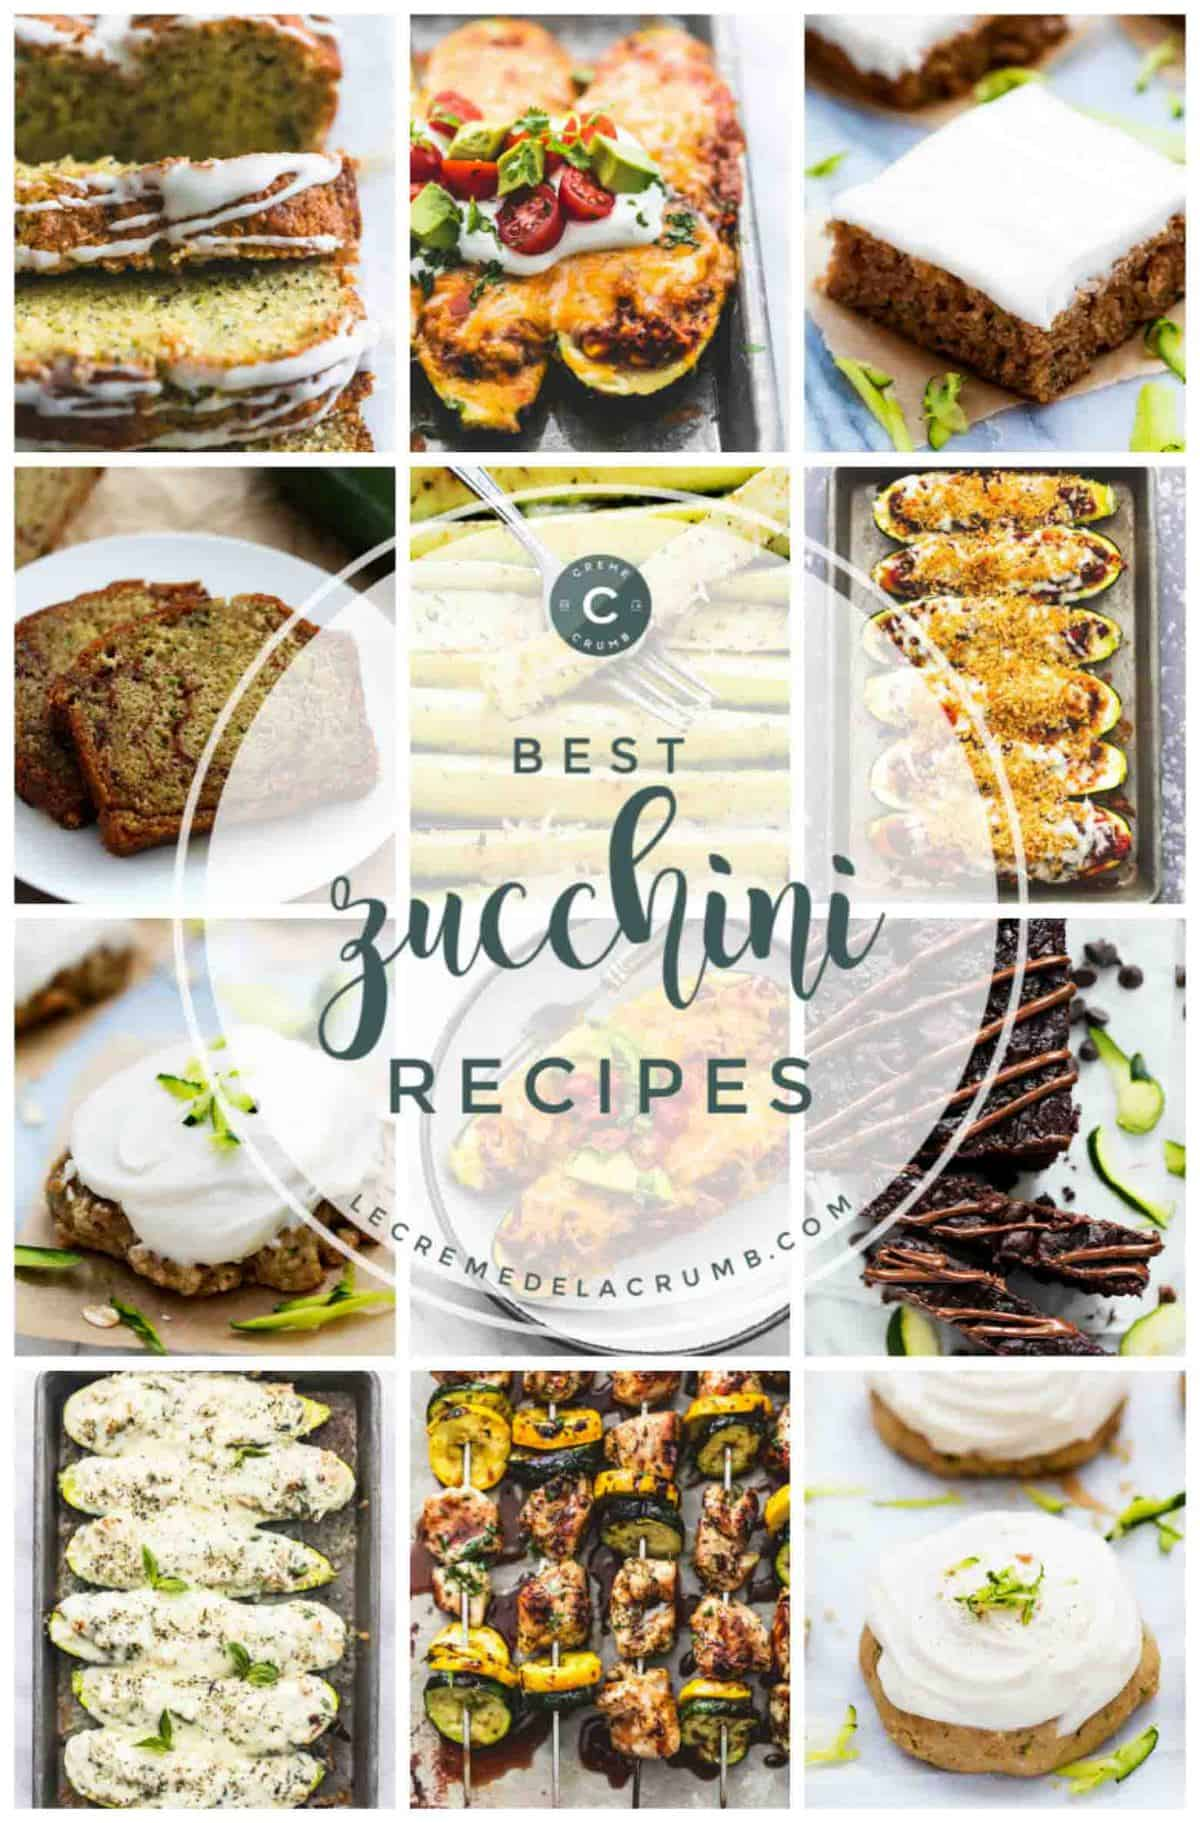 Easy Zucchini Recipes | lecremedelacrumb.com